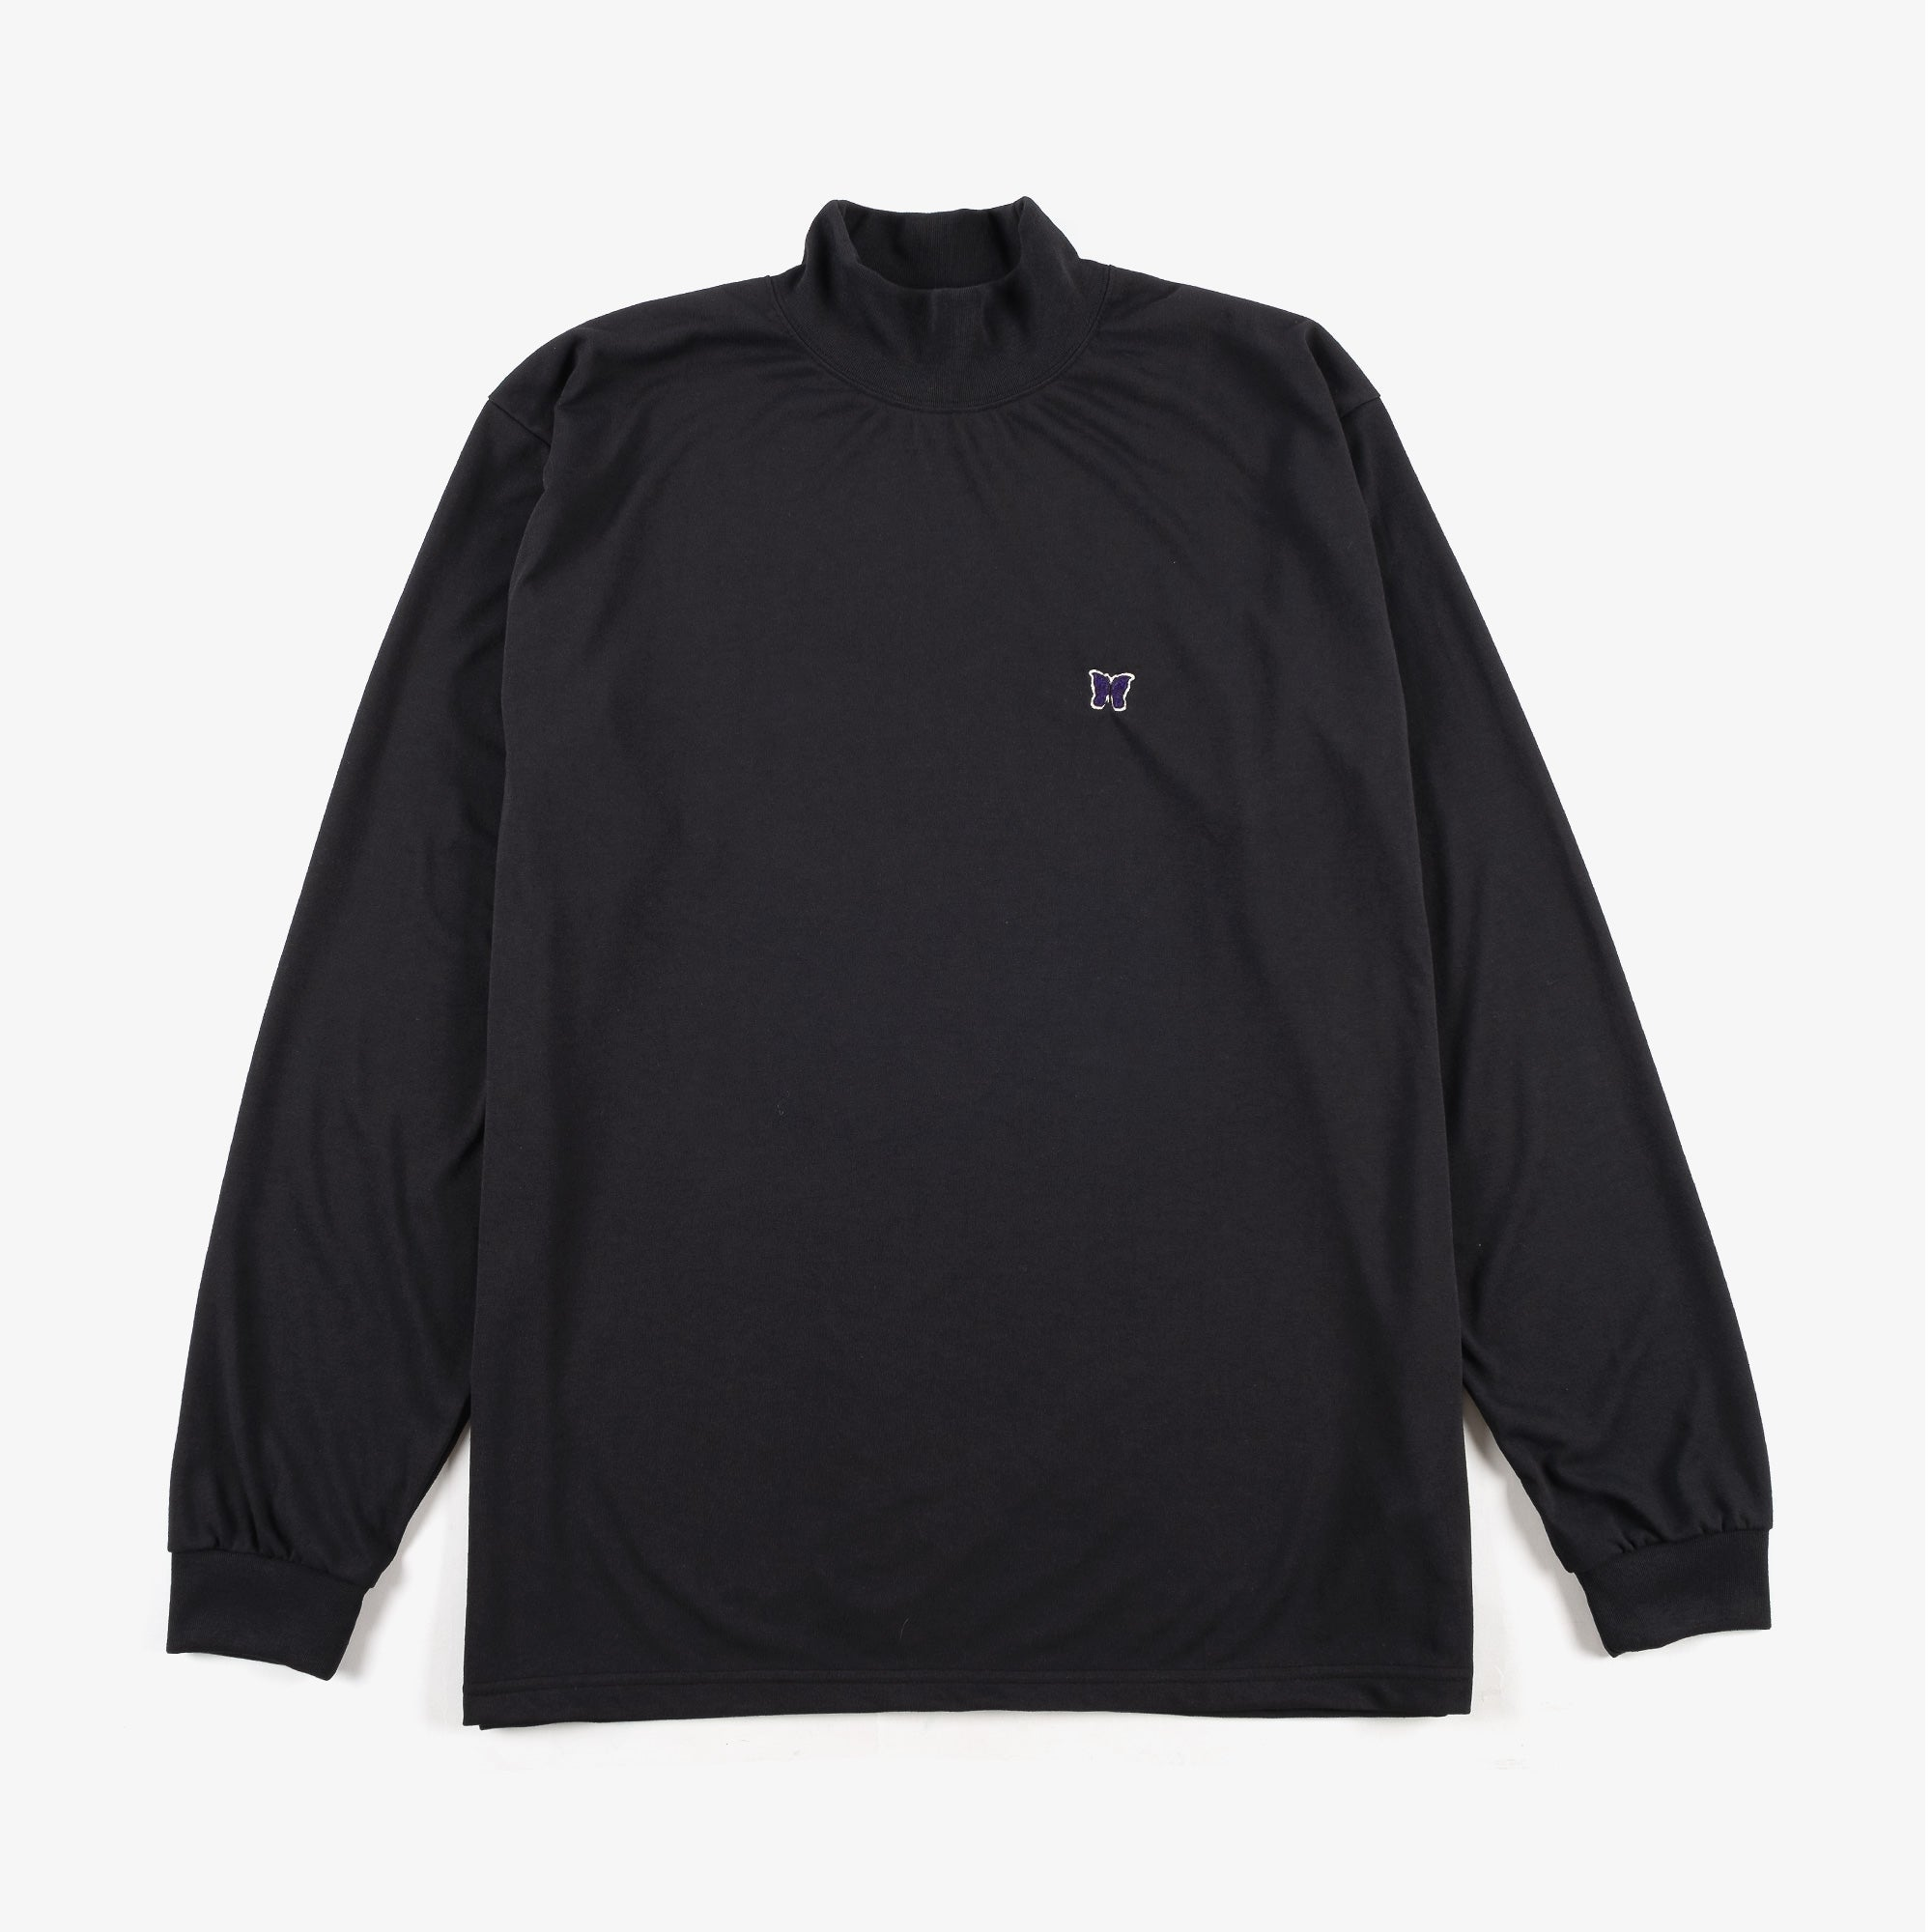 Needles M' L/S Mock Neck T-Shirt - Black 1